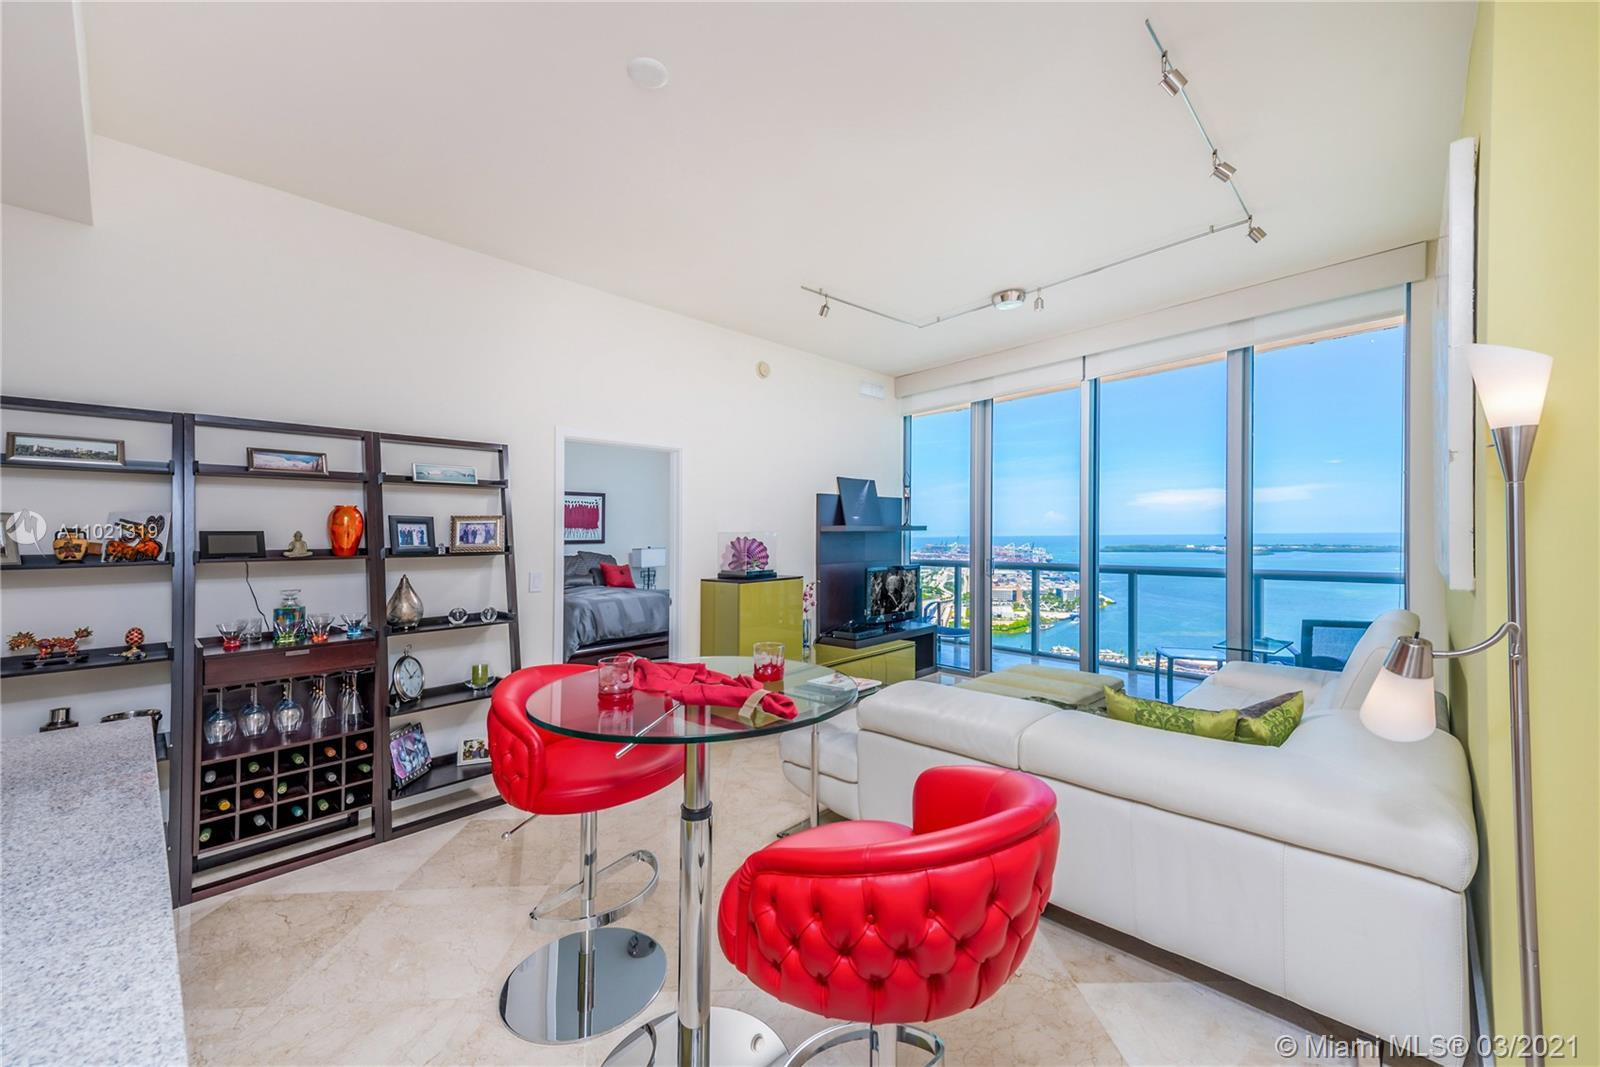 TENANT-OCCUPIED THROUGH JUNE 14TH. Turnkey furnished 1 Bed + Den/1.5 Bath condo at Marina Blue offer